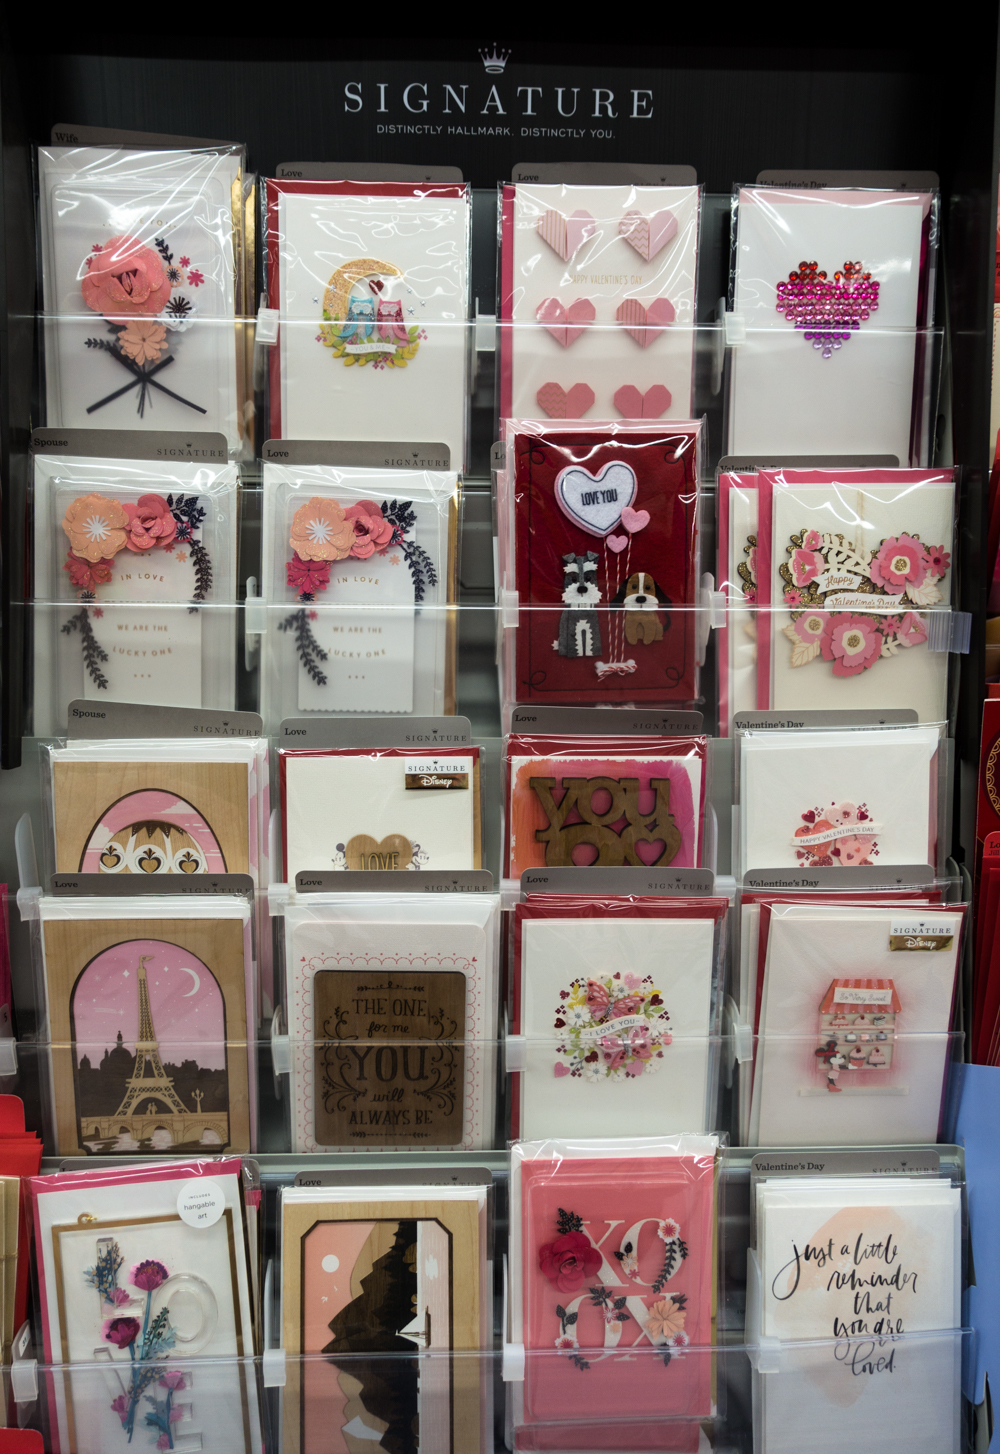 You can find the newest collection of Hallmark Signature Cards for Valentine's Day in the card section of your local Walmart!